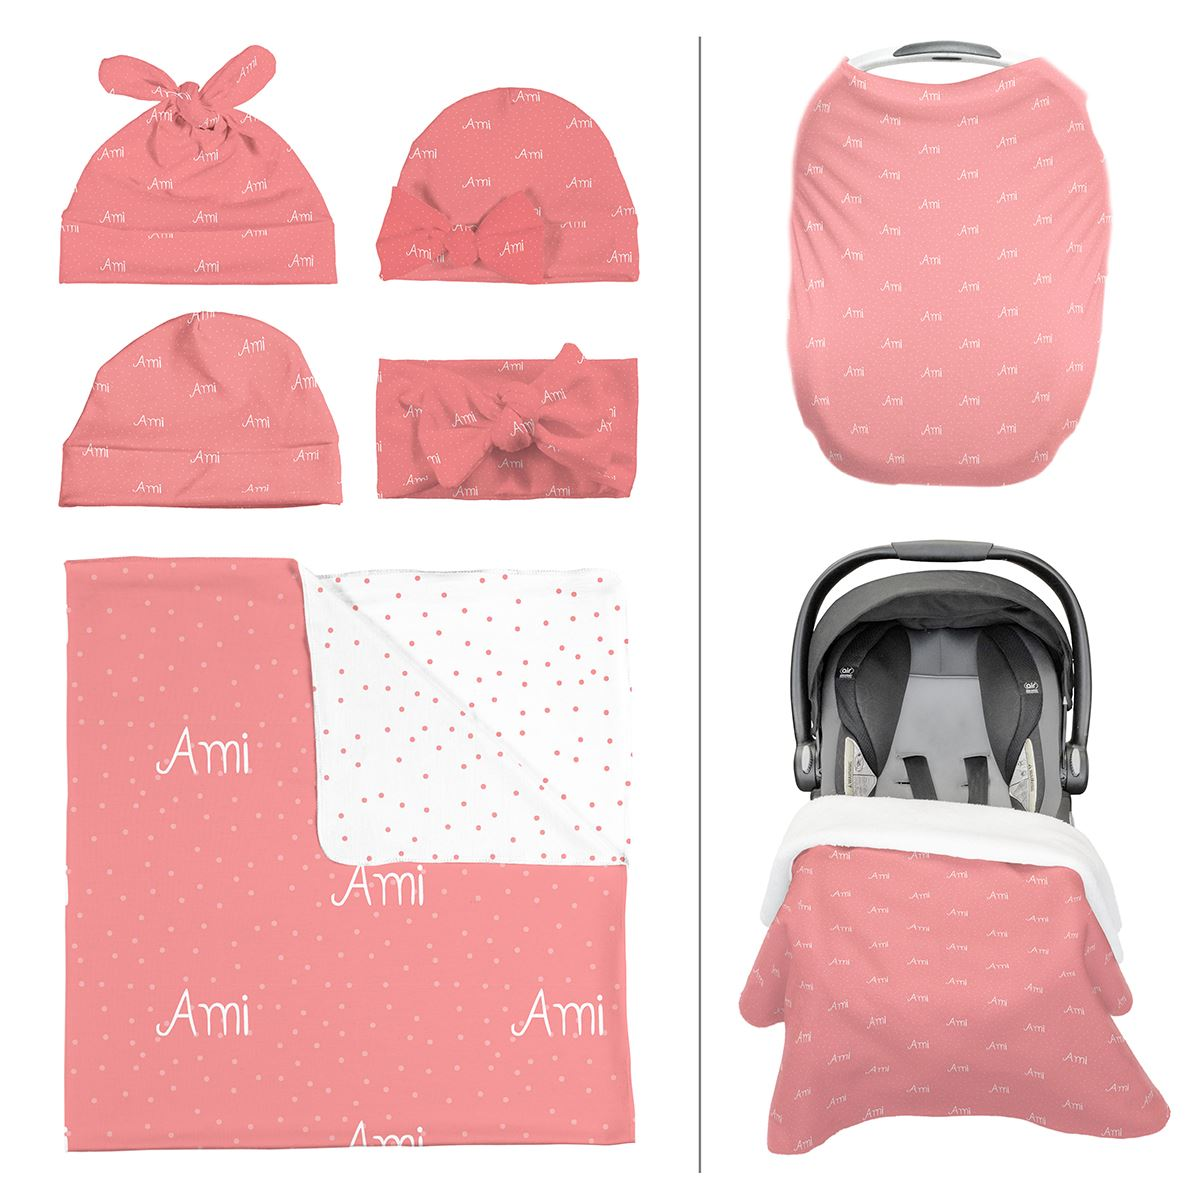 Ami's Cute Confetti | Take Me Home Bundle